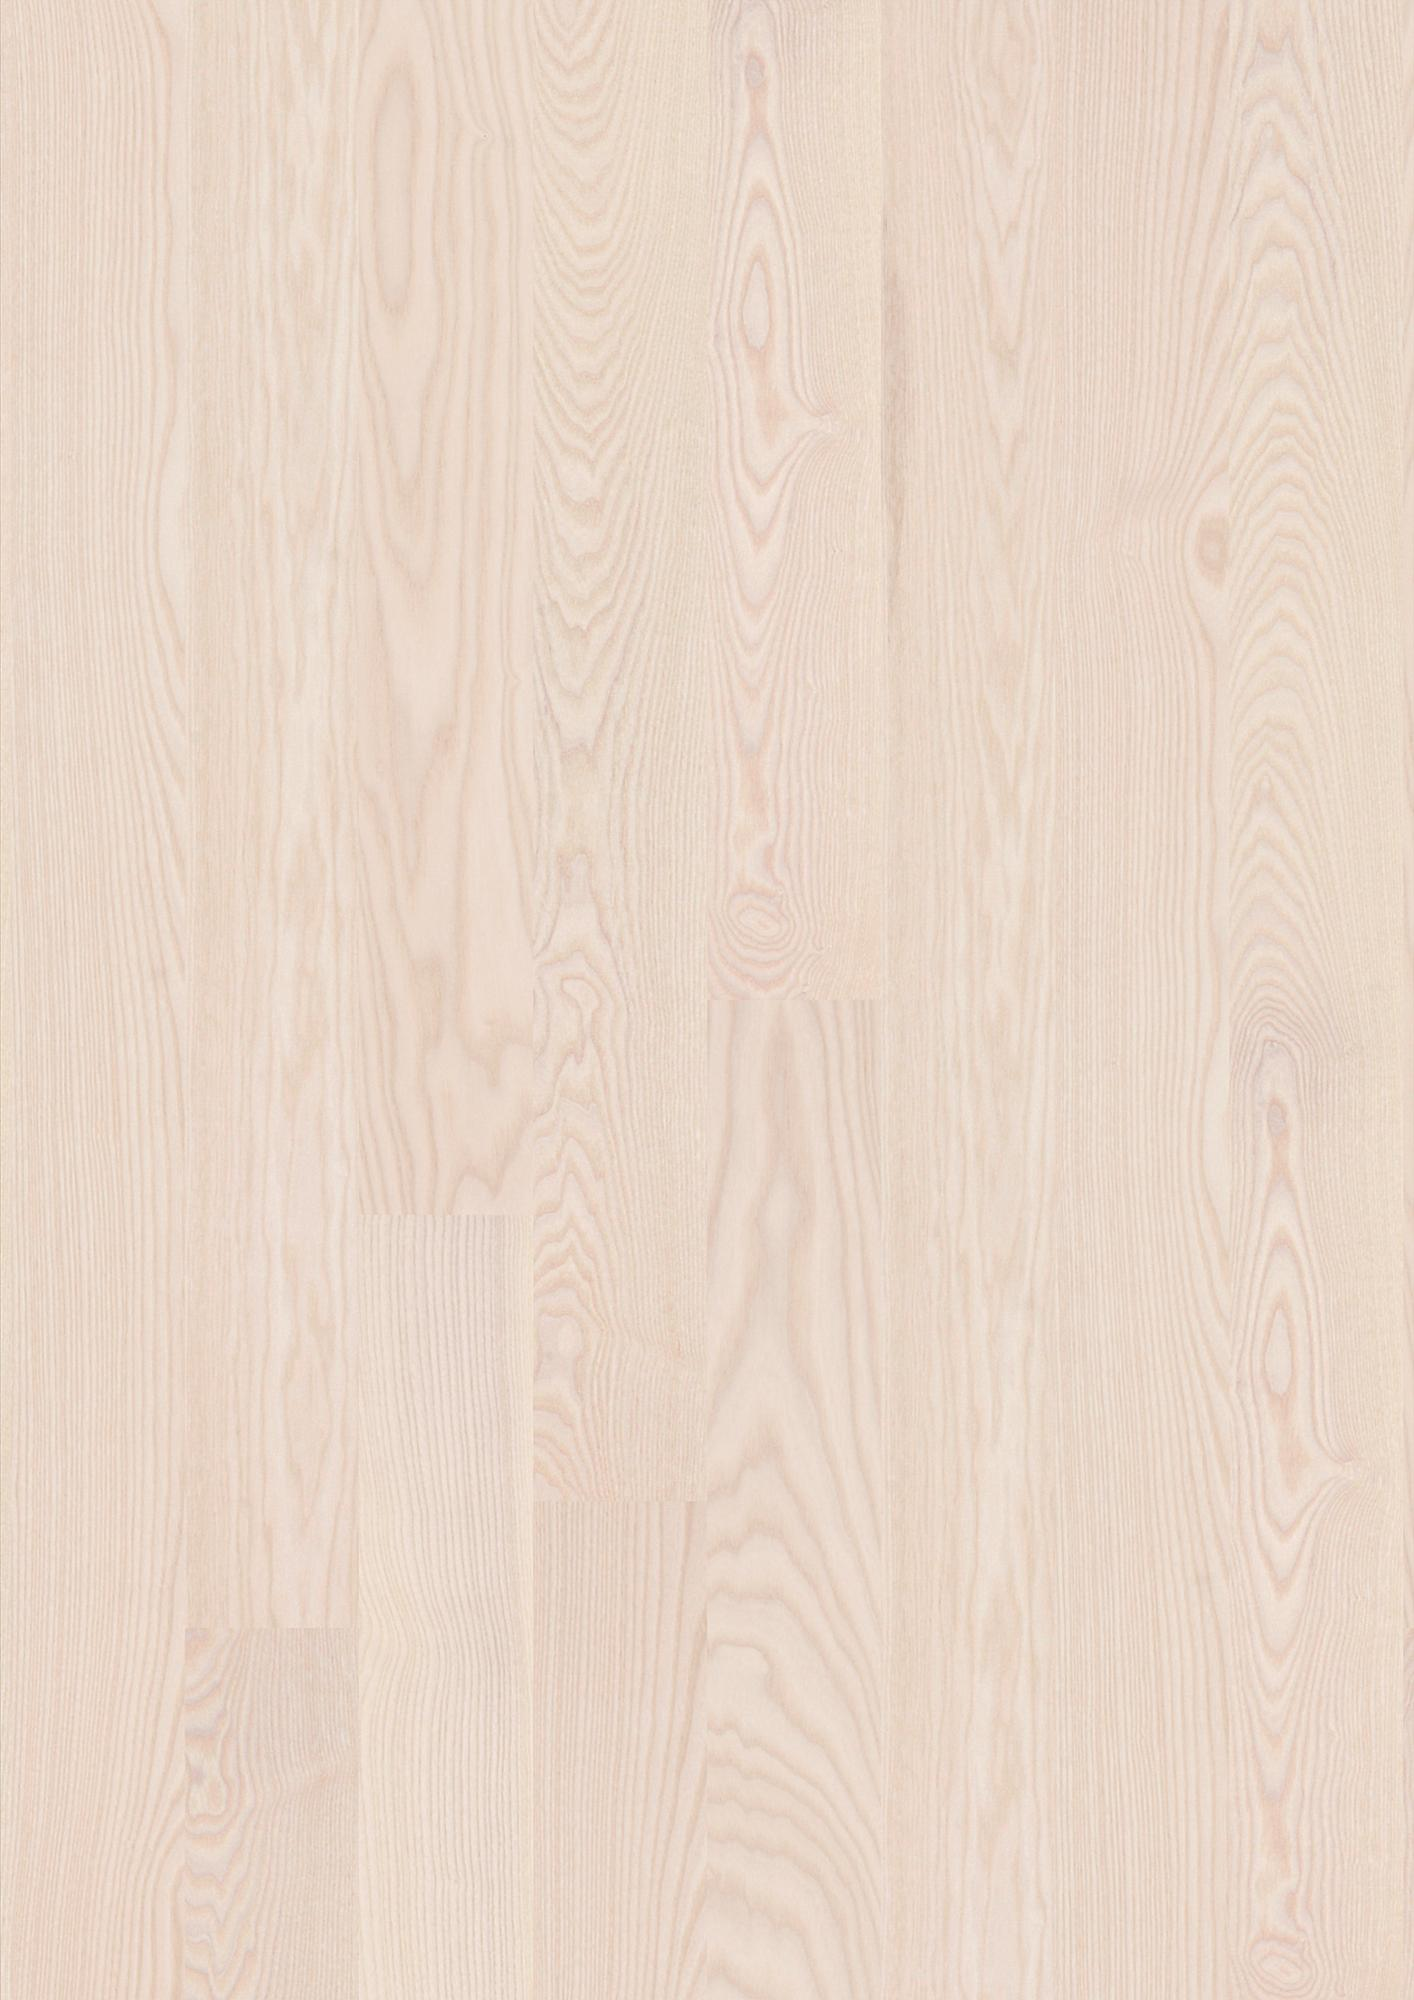 Ash Polar, Live Satin lacquer, Unbrushed, Square edged, Plank 138, 35/64x5 7/16x86 39/64inch